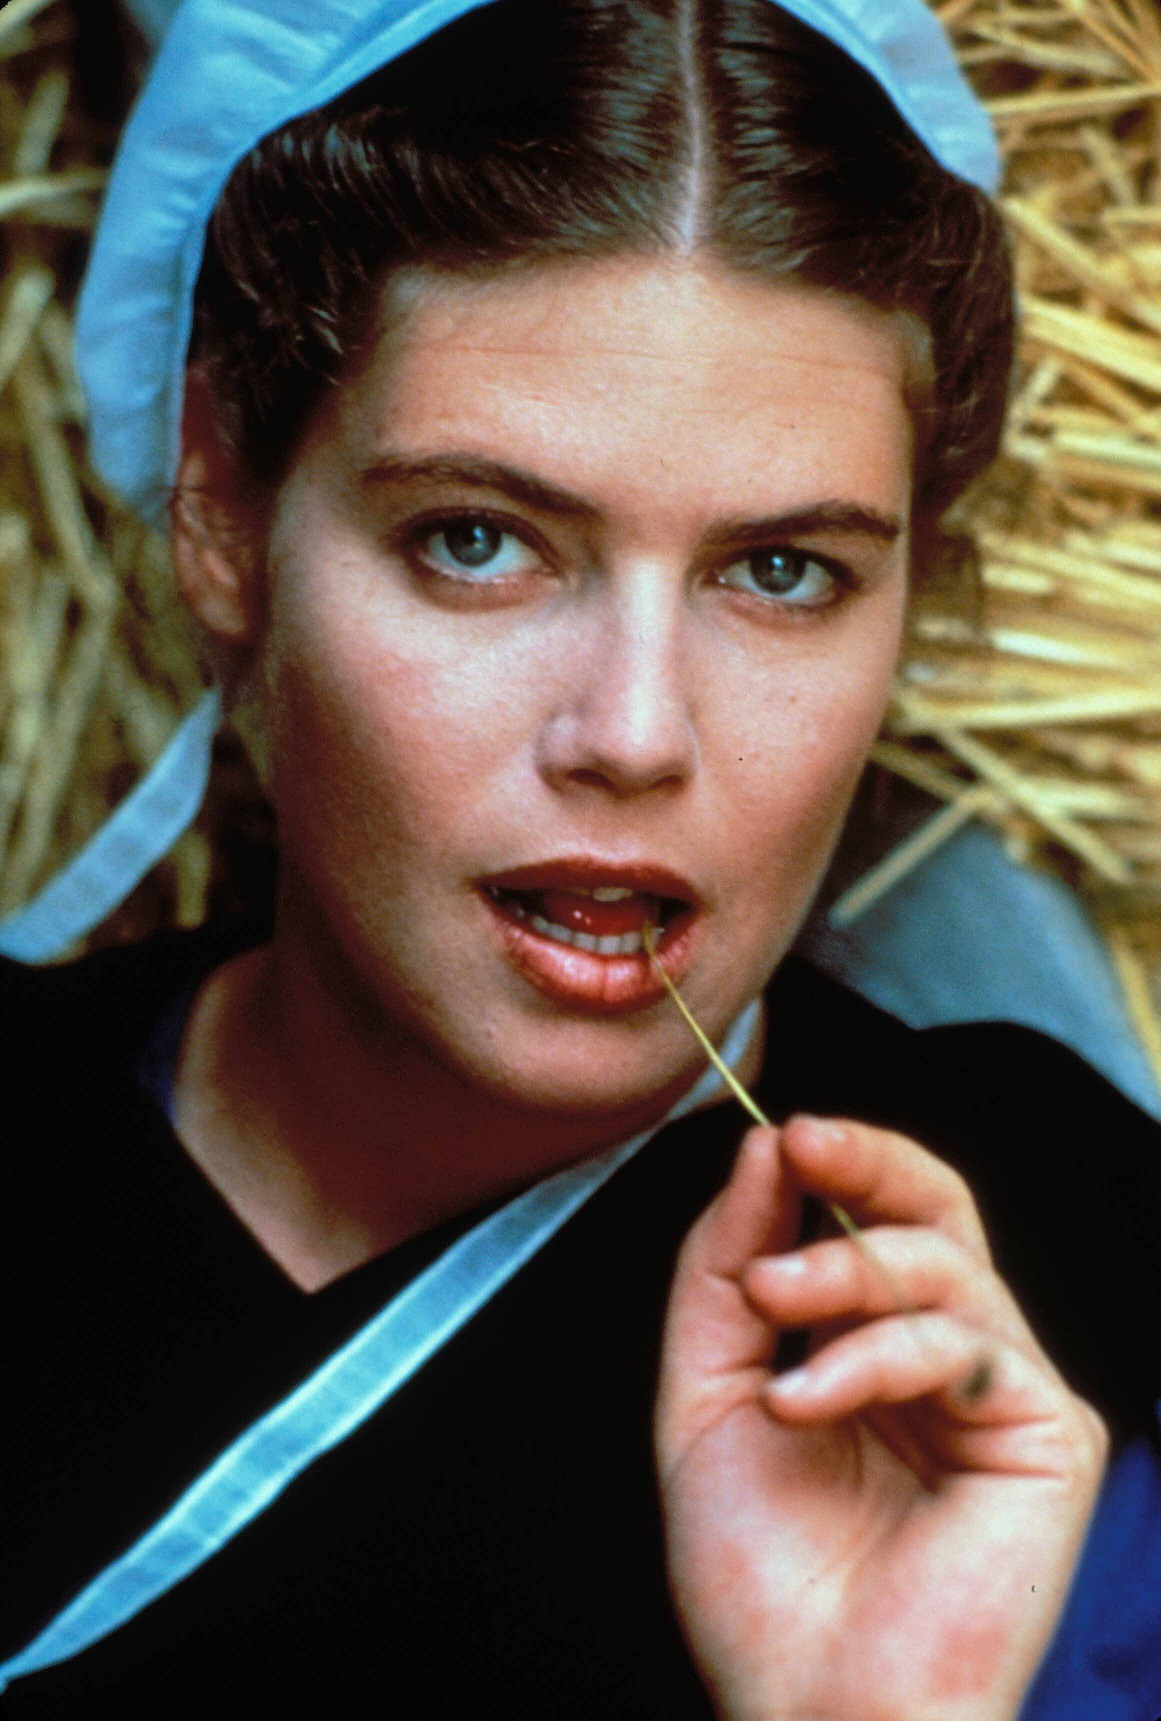 Qué Fue De Kelly Mcgillis La Instructora De Top Gun